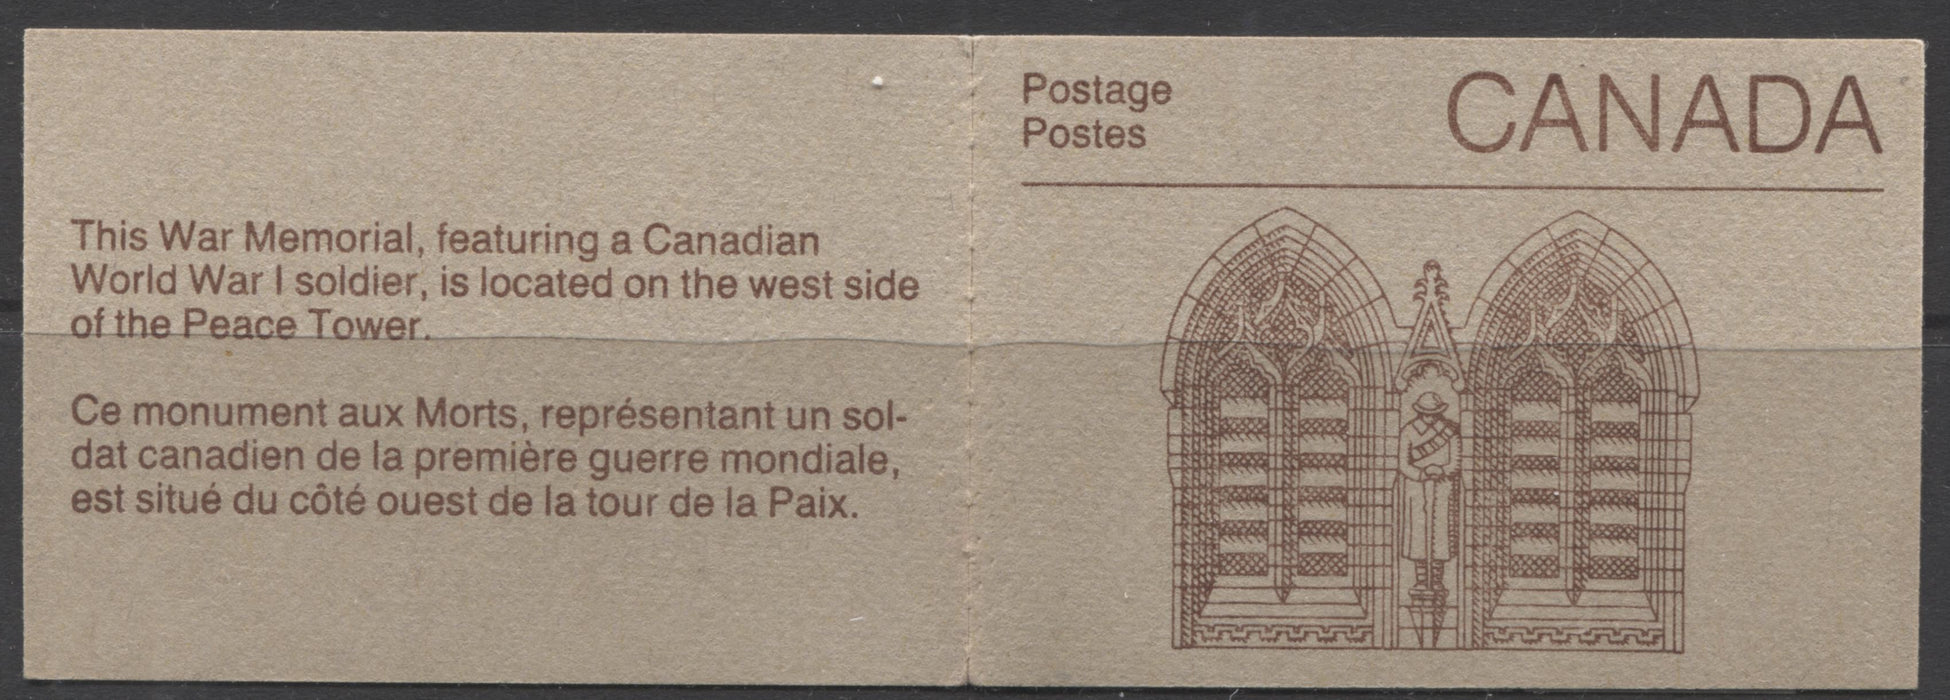 Canada McCann #BK88Ab-Ac 1982-1987 Artifacts and National Parks Issue, Complete 50¢ Booklet, Coated Abitibi Paper, Low Fluorescent Paper, 70 mm Wide Pane, 4 mm GT-2 & GT-4 Tagging, Tagging Varieties Brixton Chrome VF-80 Front Entrance Cover Left Tag Bar on 3/1